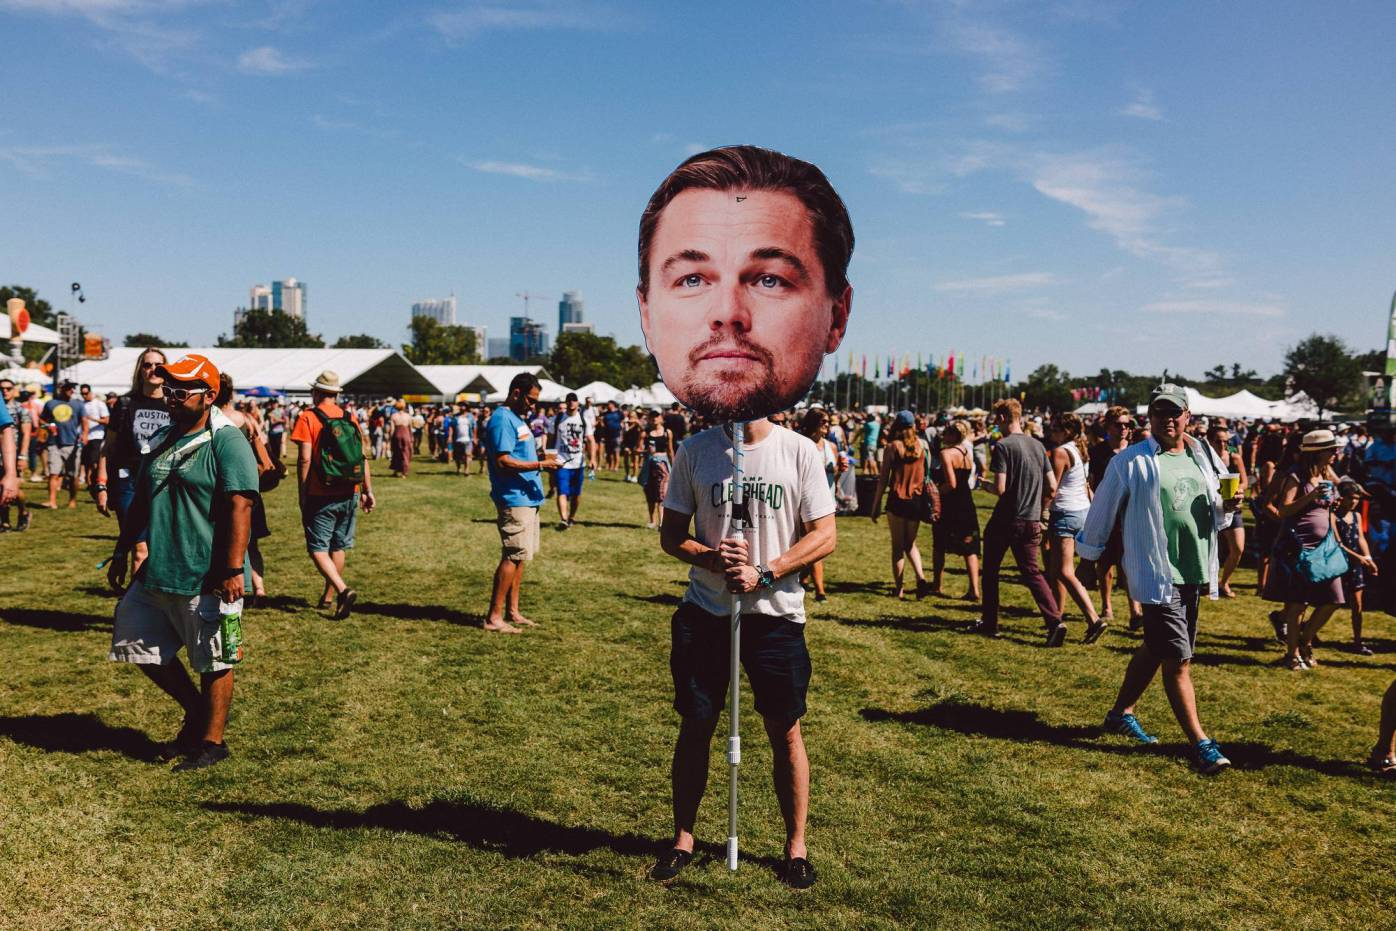 cw_20161002_aclfest_highlights_0006